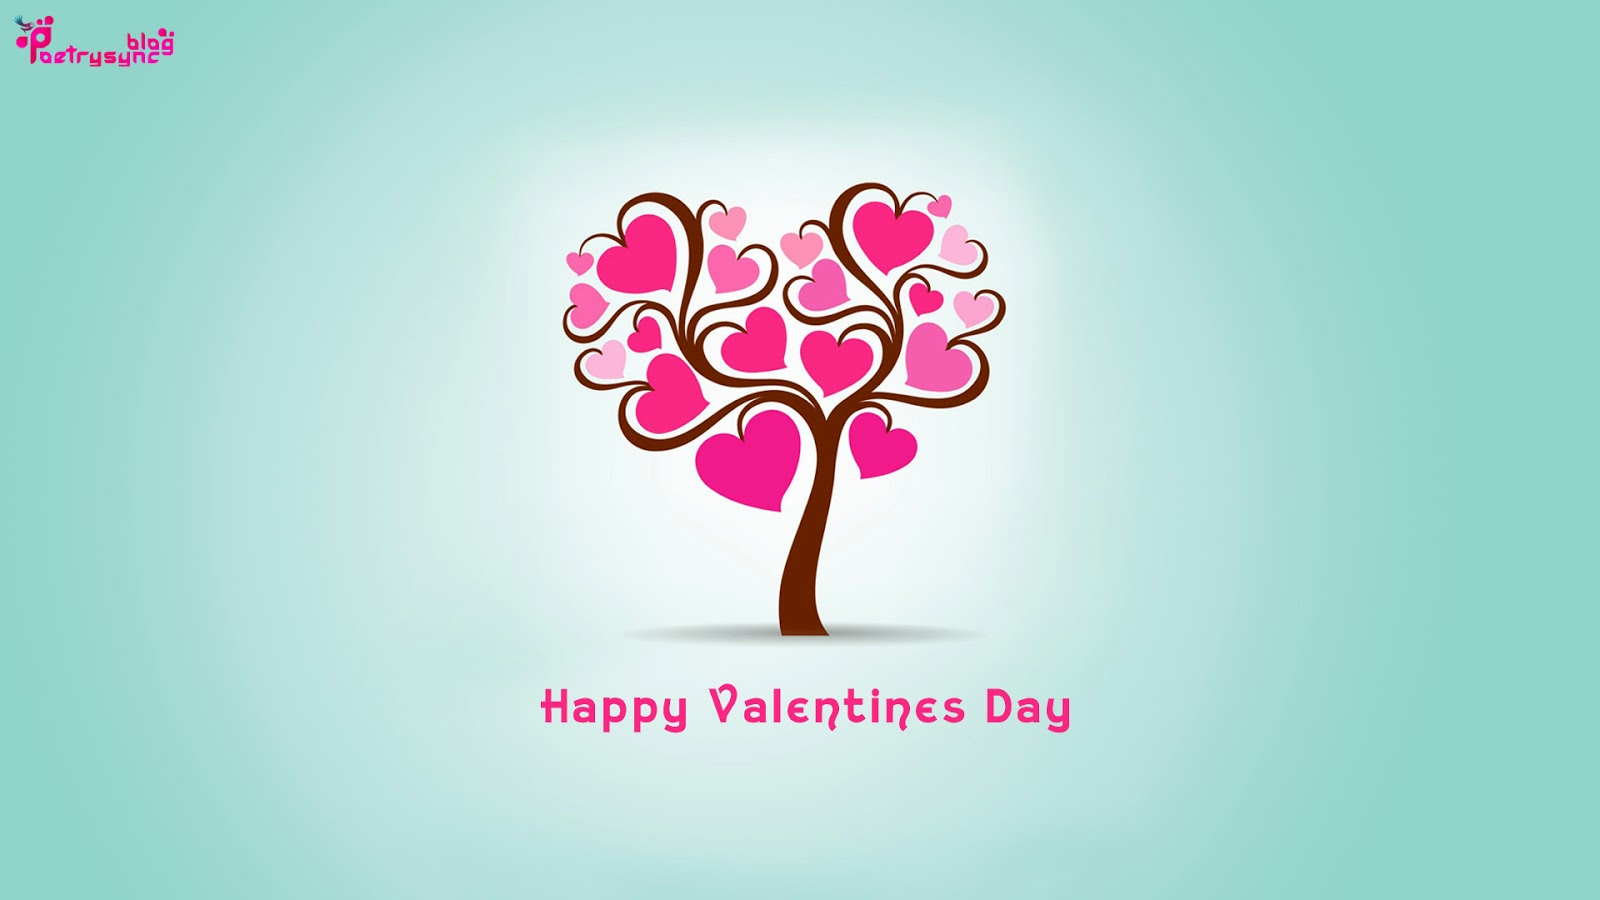 Valentine Wallpaper 1920x1080 - WallpaperSafari